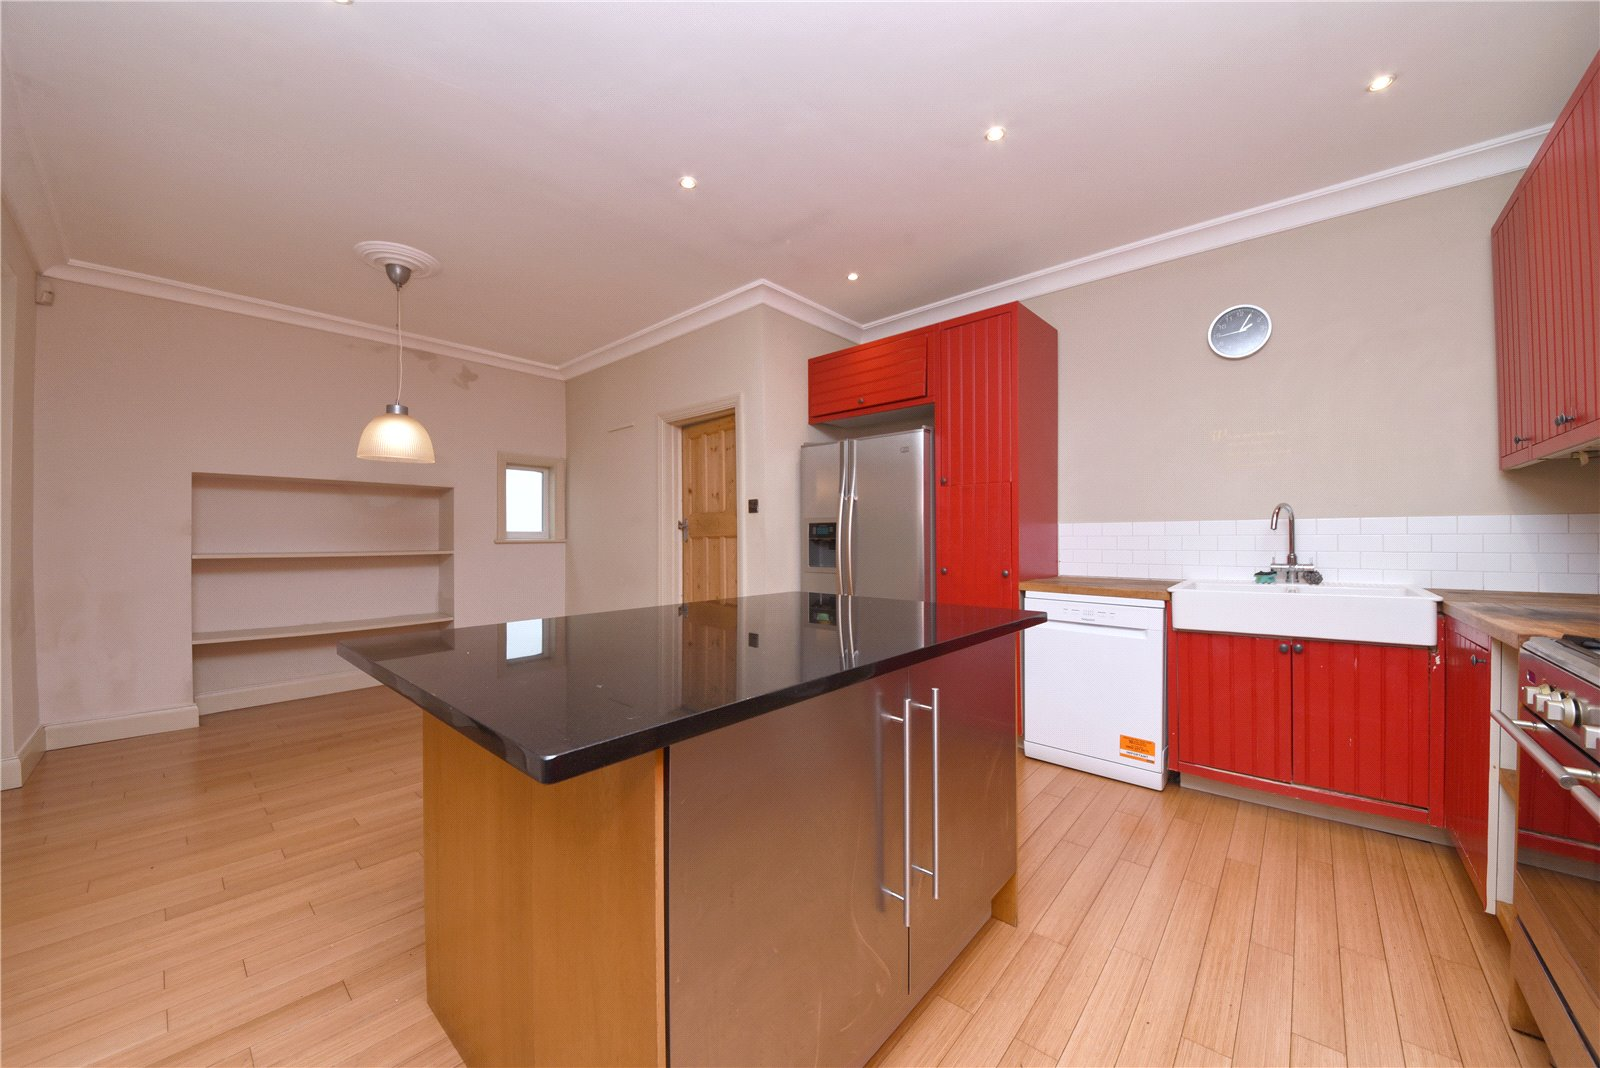 4 bed house to rent in Longland Drive, Totteridge 4